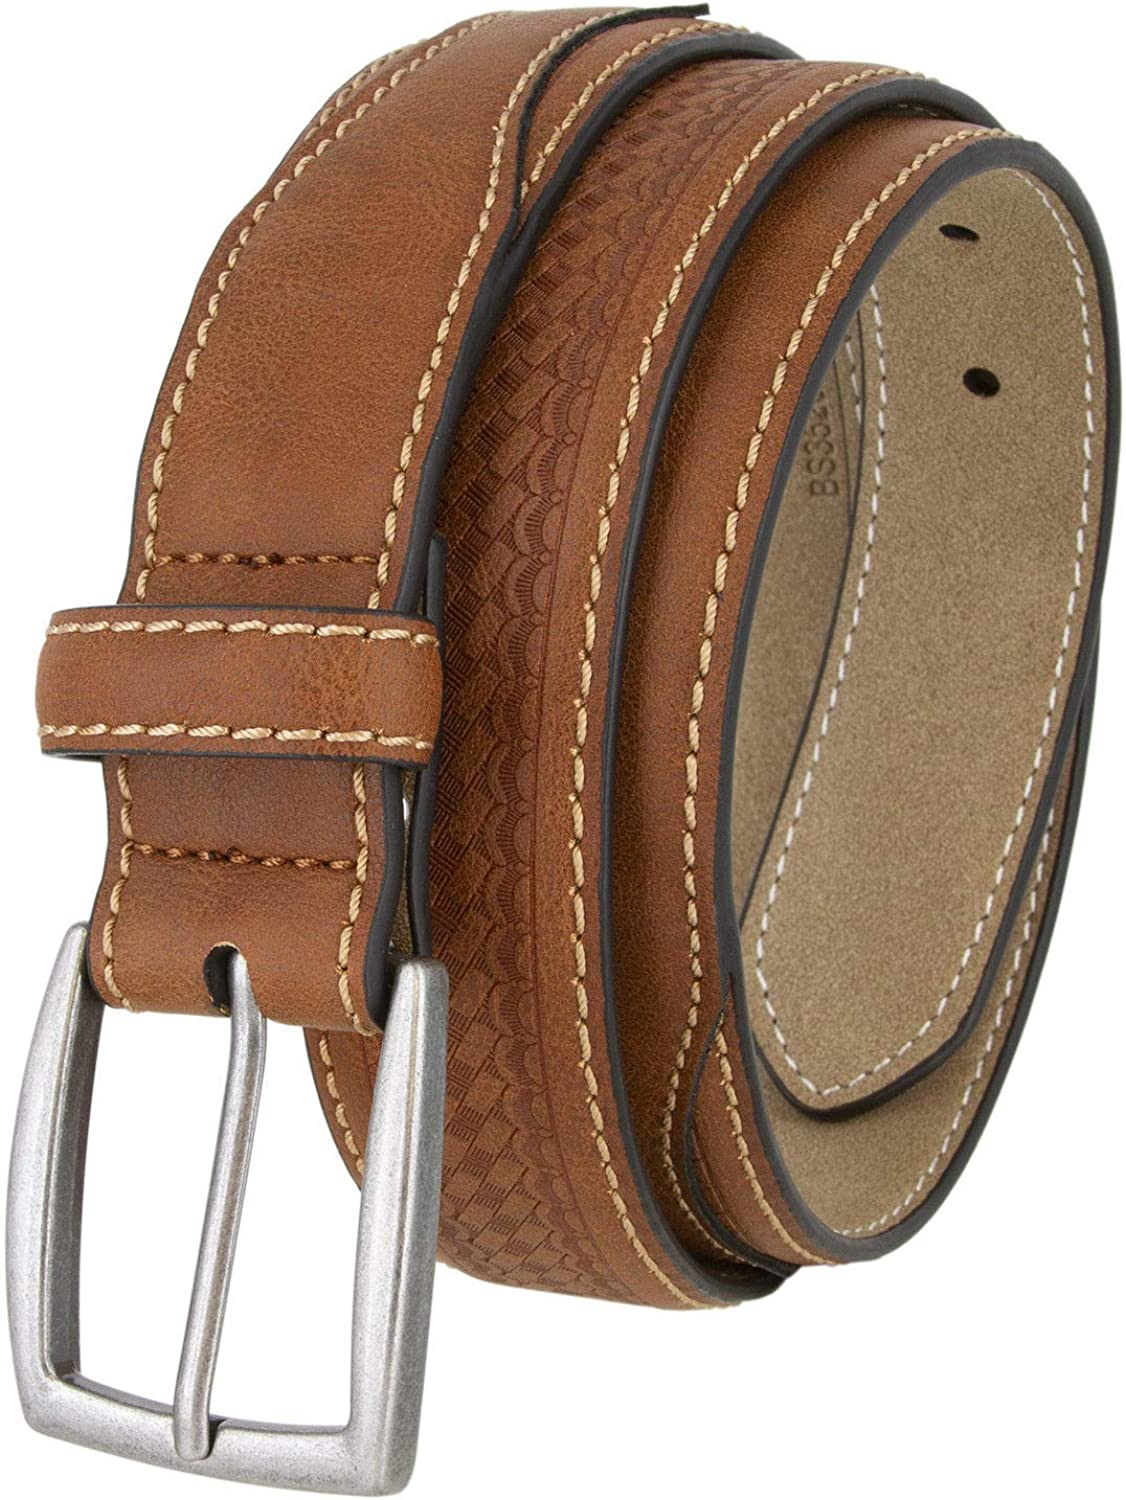 New Brown Color California Mens Basketweave Design Leather Belt Antique Silver Buckle 1 3//8 Wide